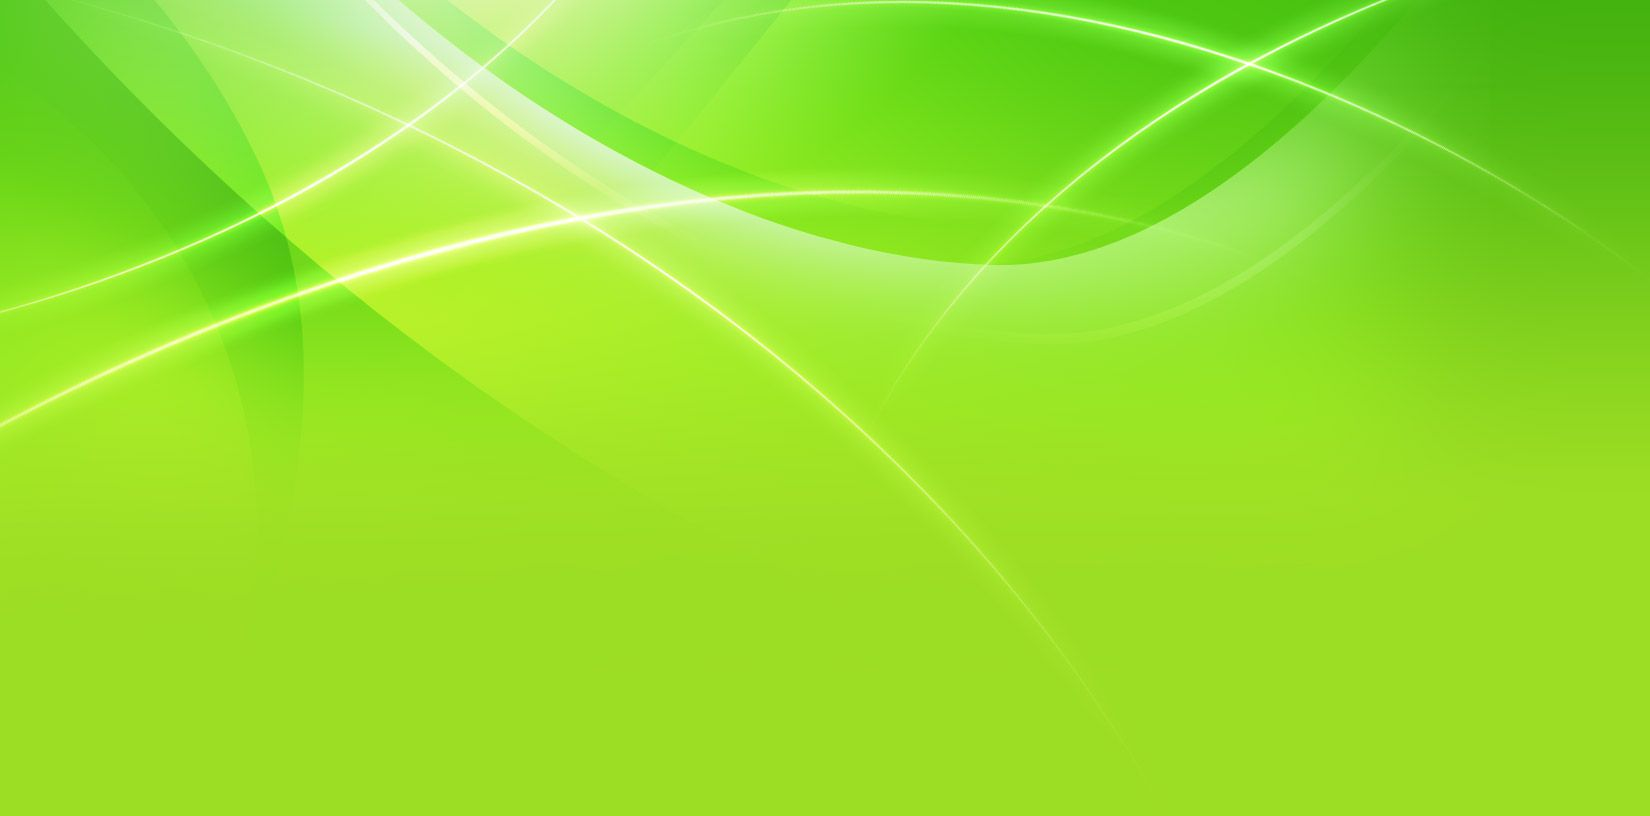 Cool Green Backgrounds